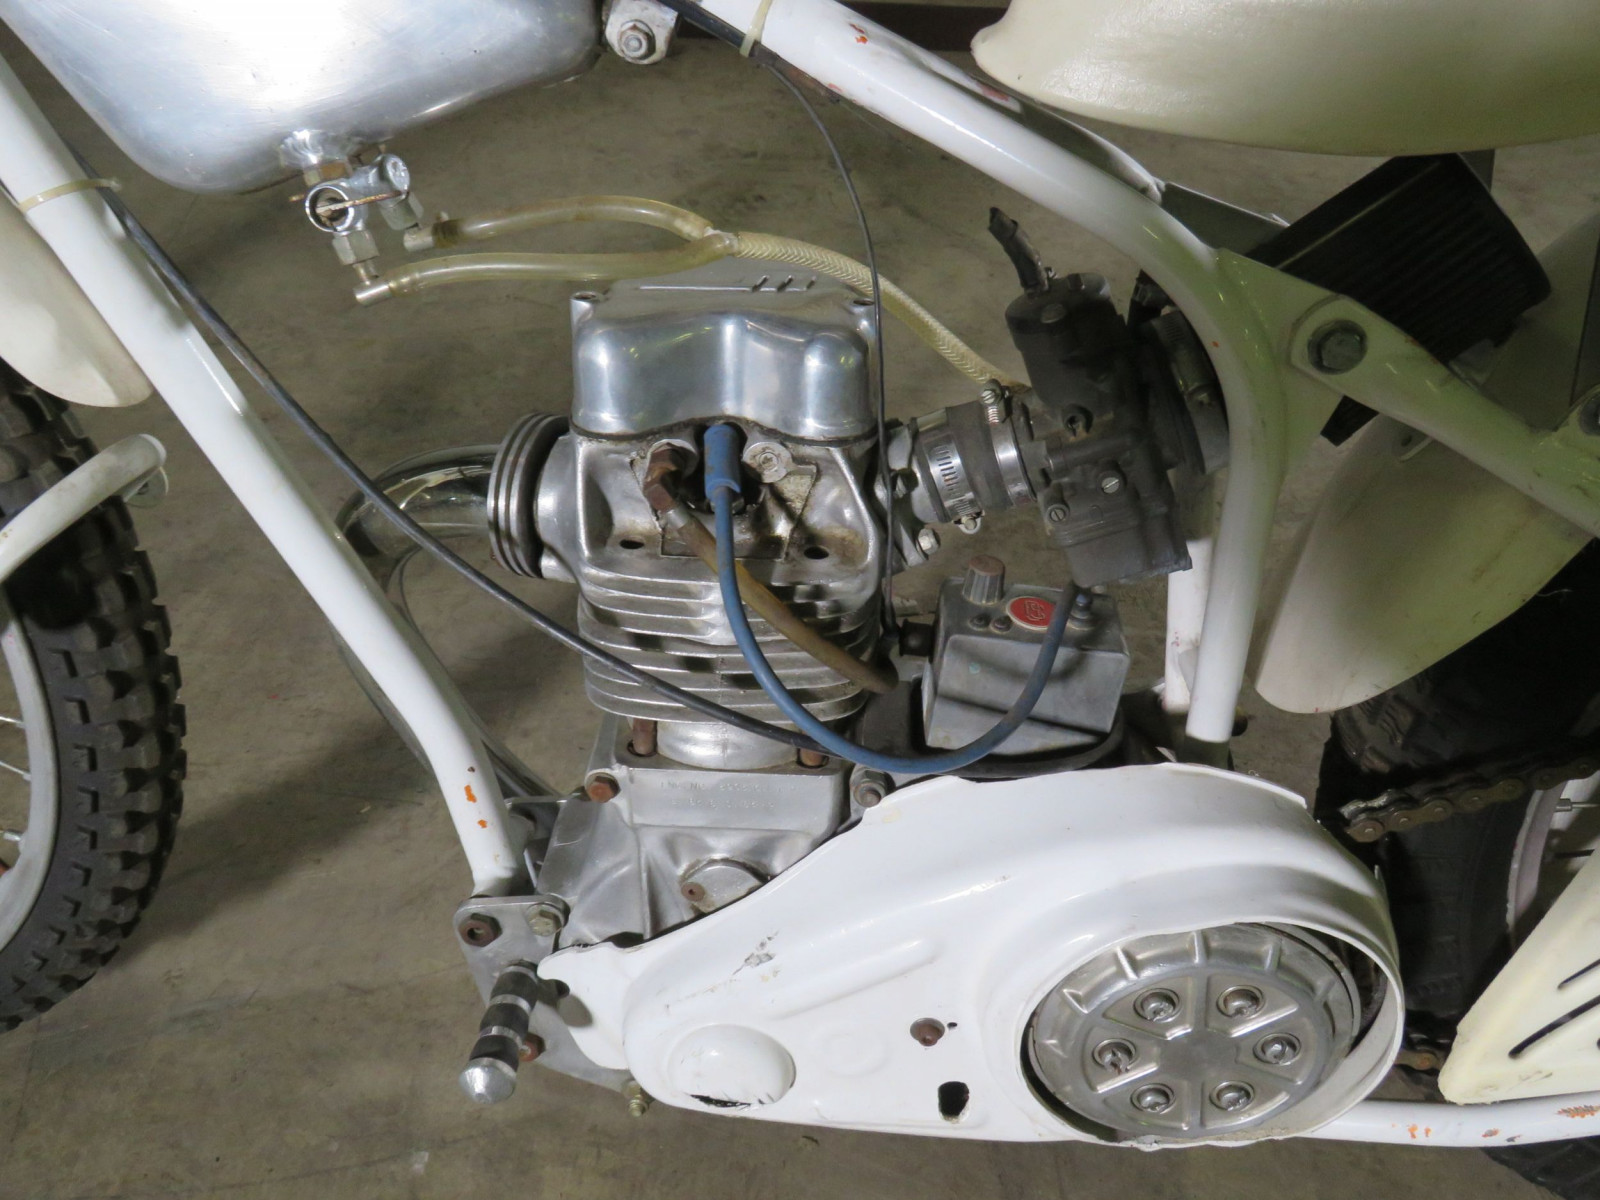 Speedway Racer Motorcycle - Image 2